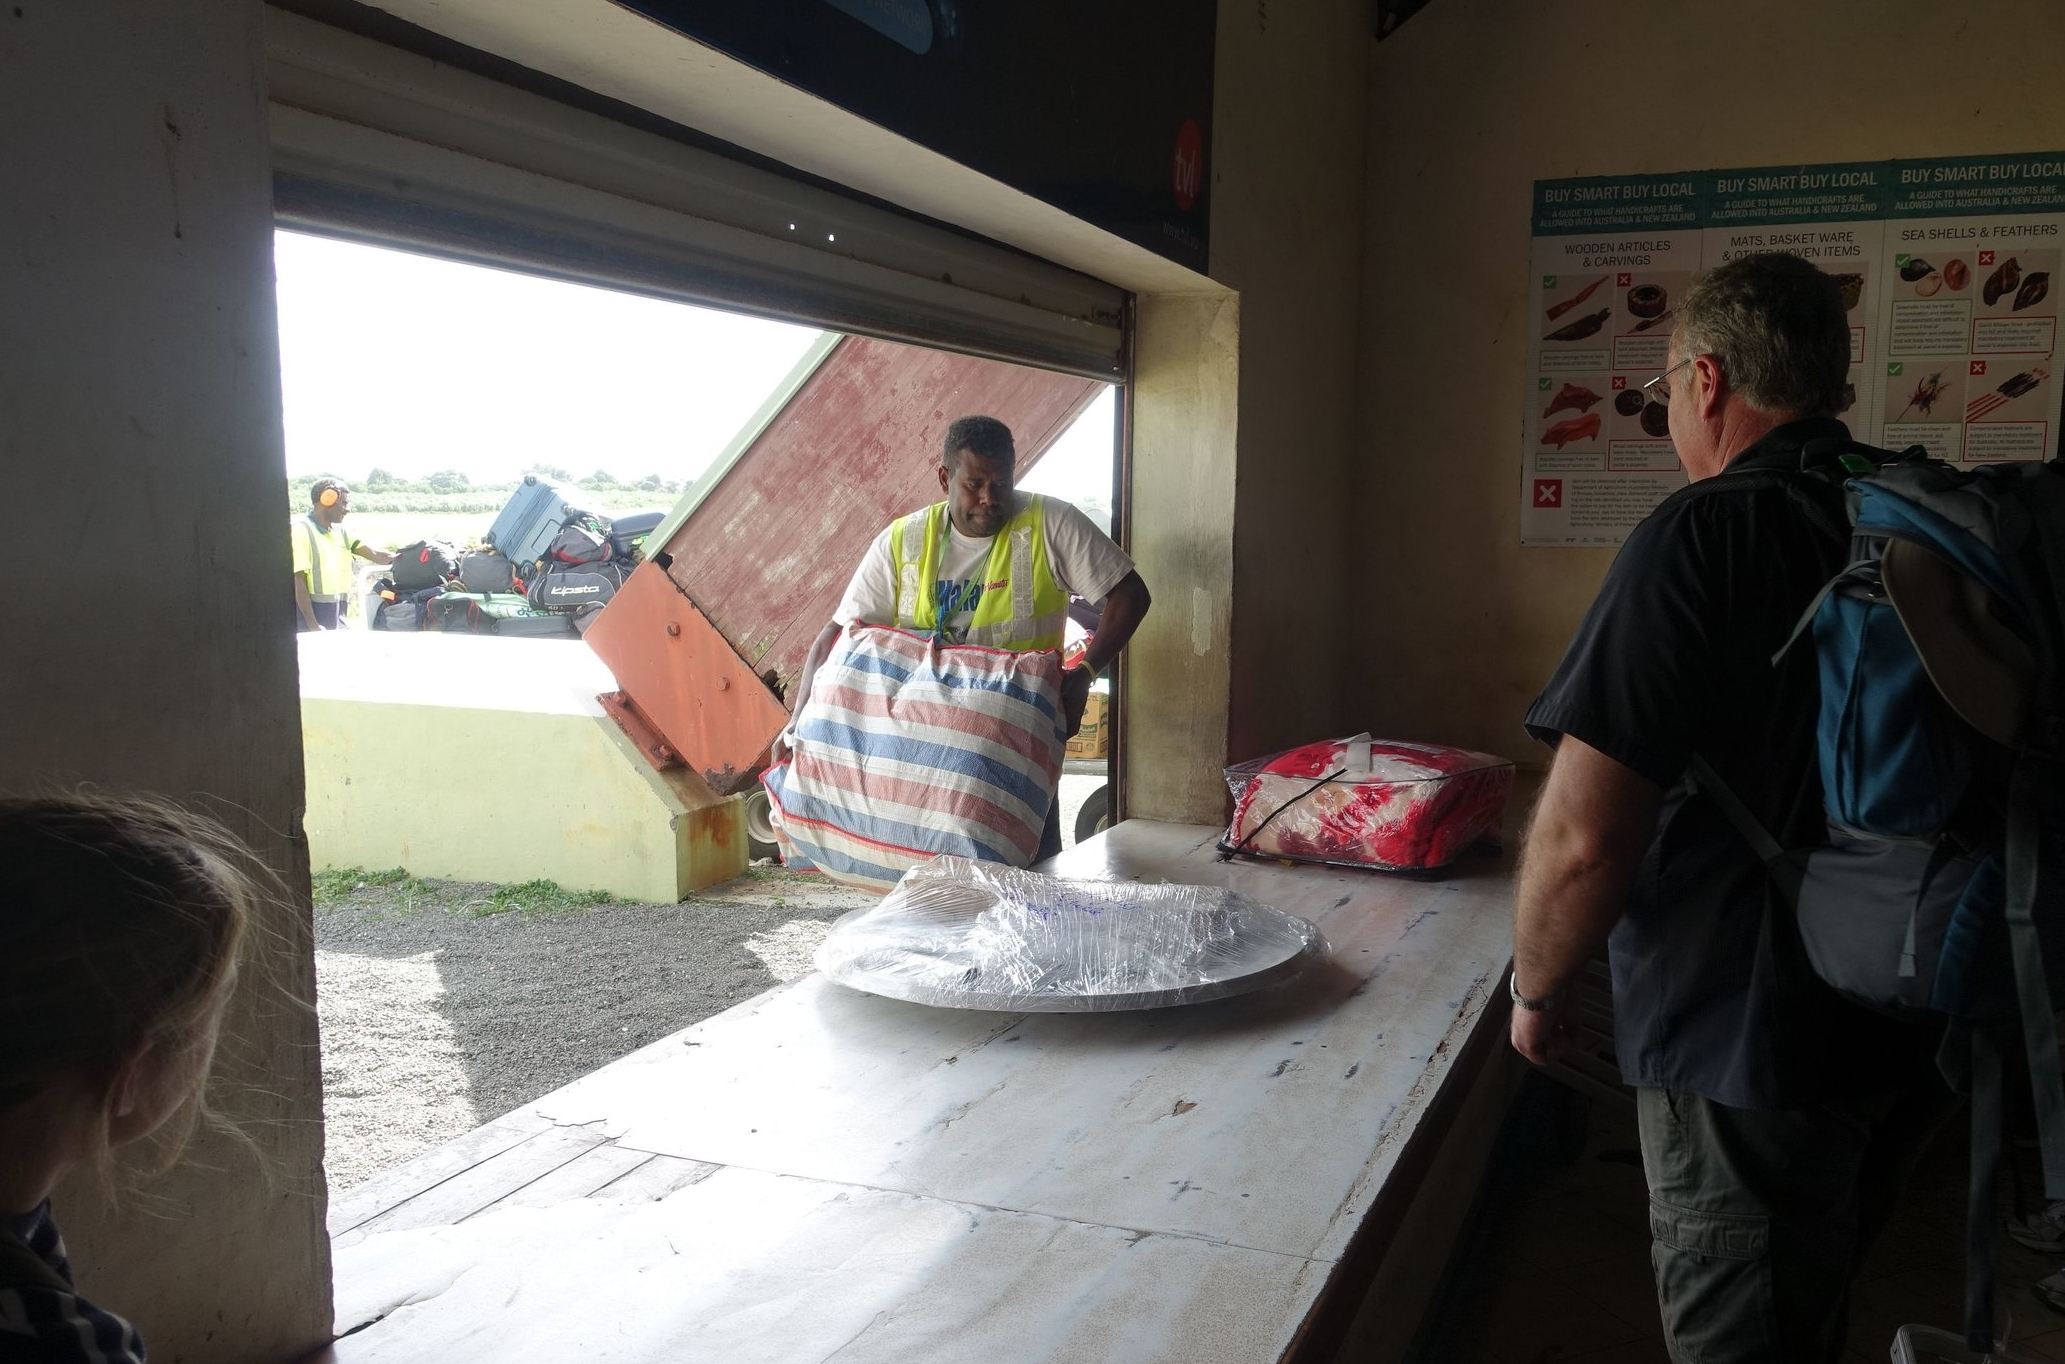 tanna airport baggage retrieval